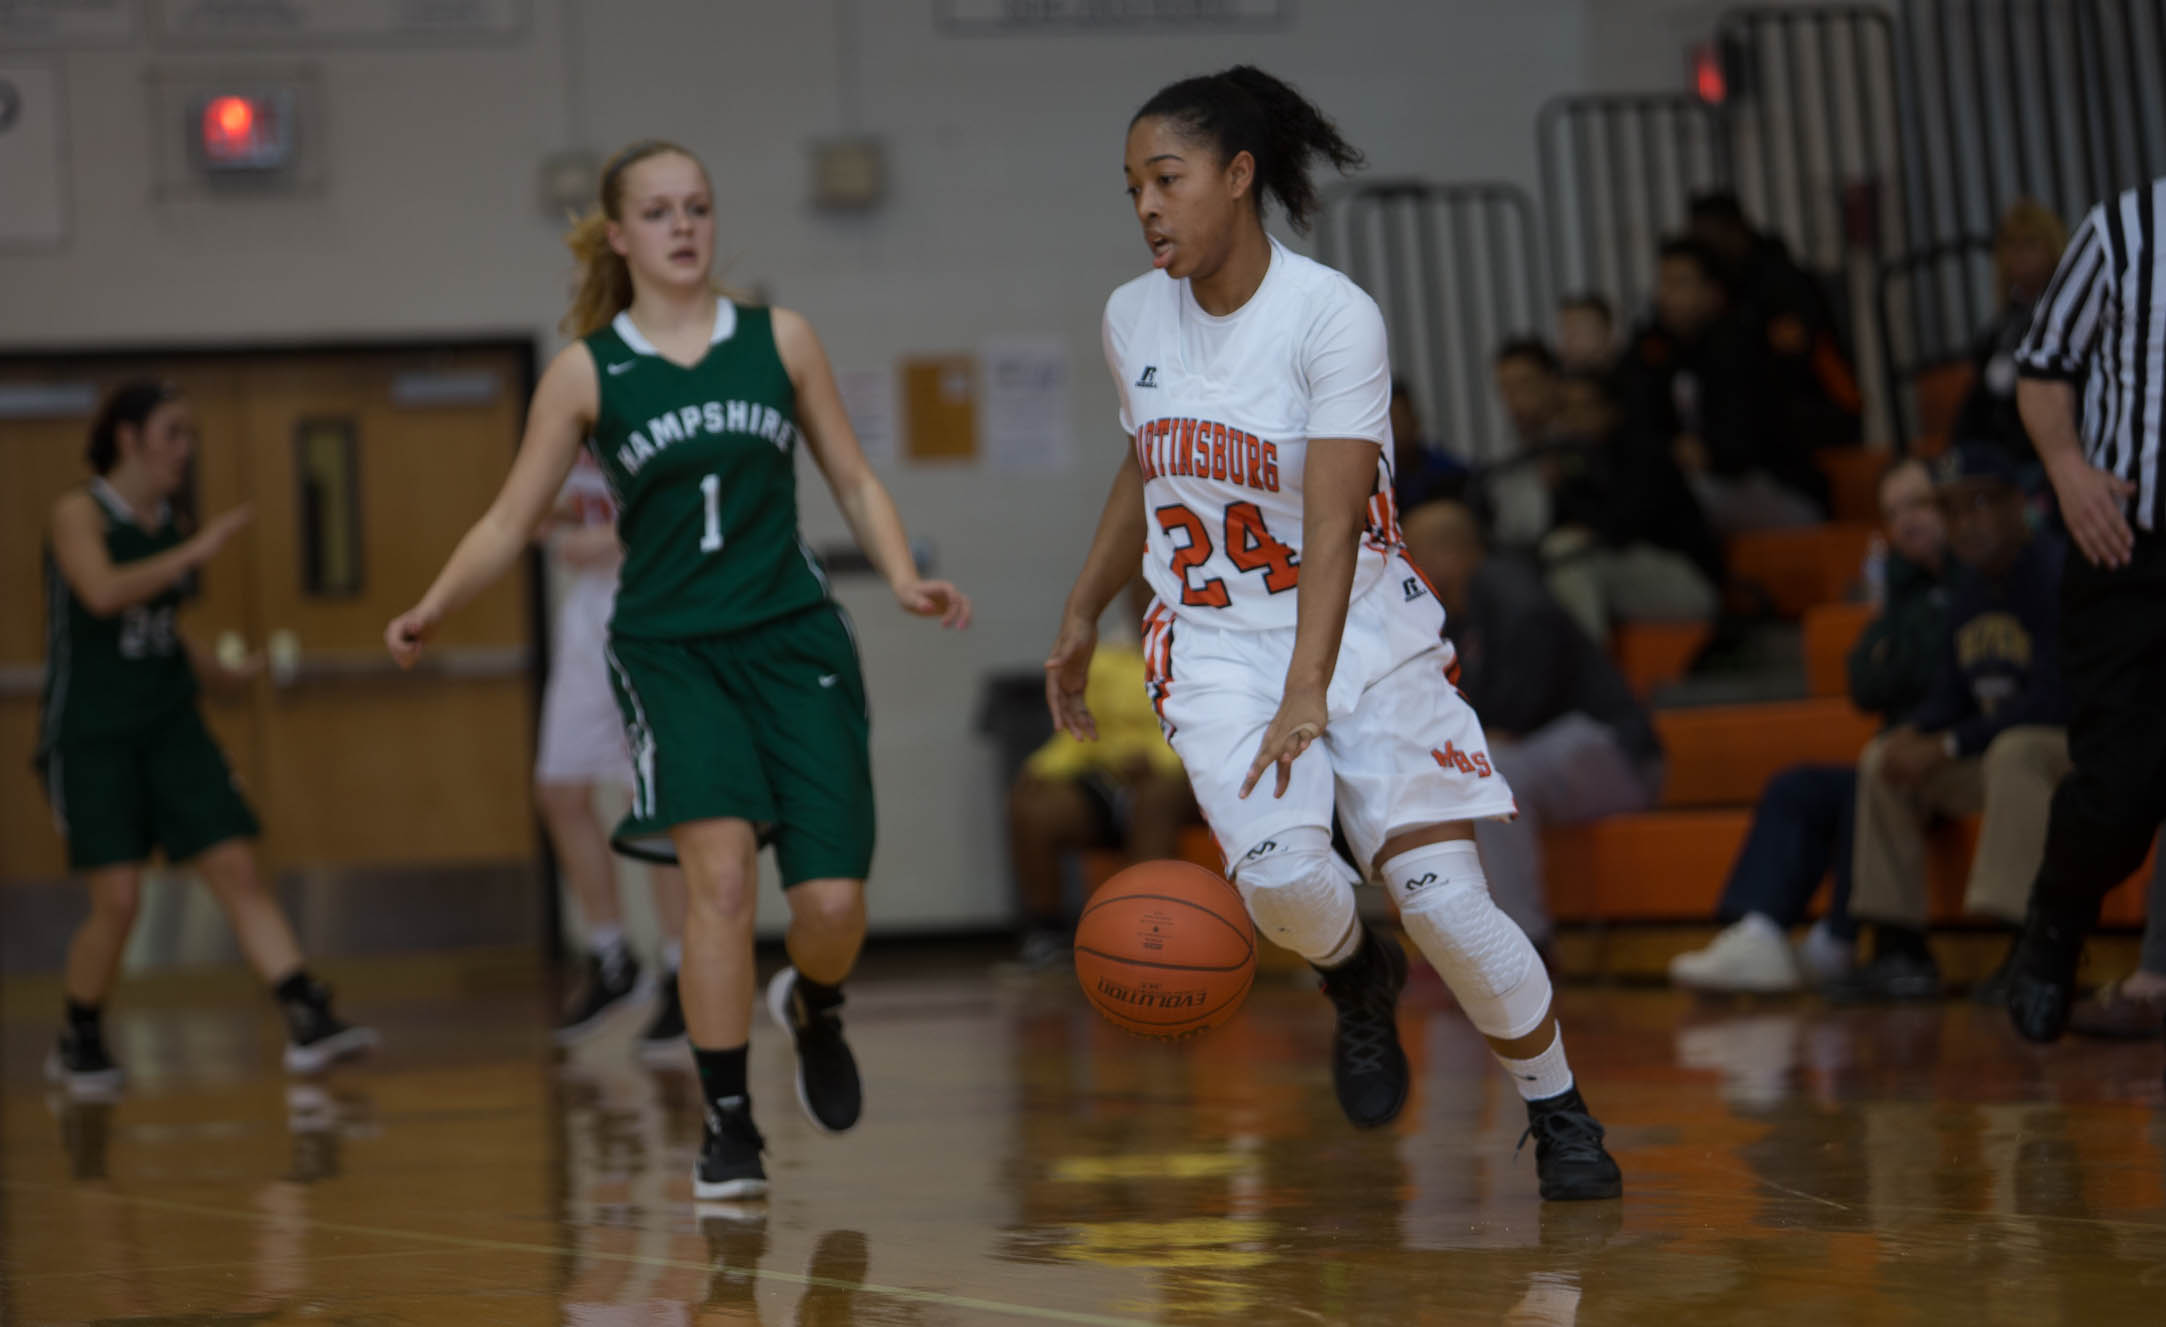 martinsburg girls Girls basketball (summer, fall & winter) the martinsburg-berkeley county girls basketball league is open to girls in grades ages 6-14 in grades 1 through 8 as of september 1, 2018.